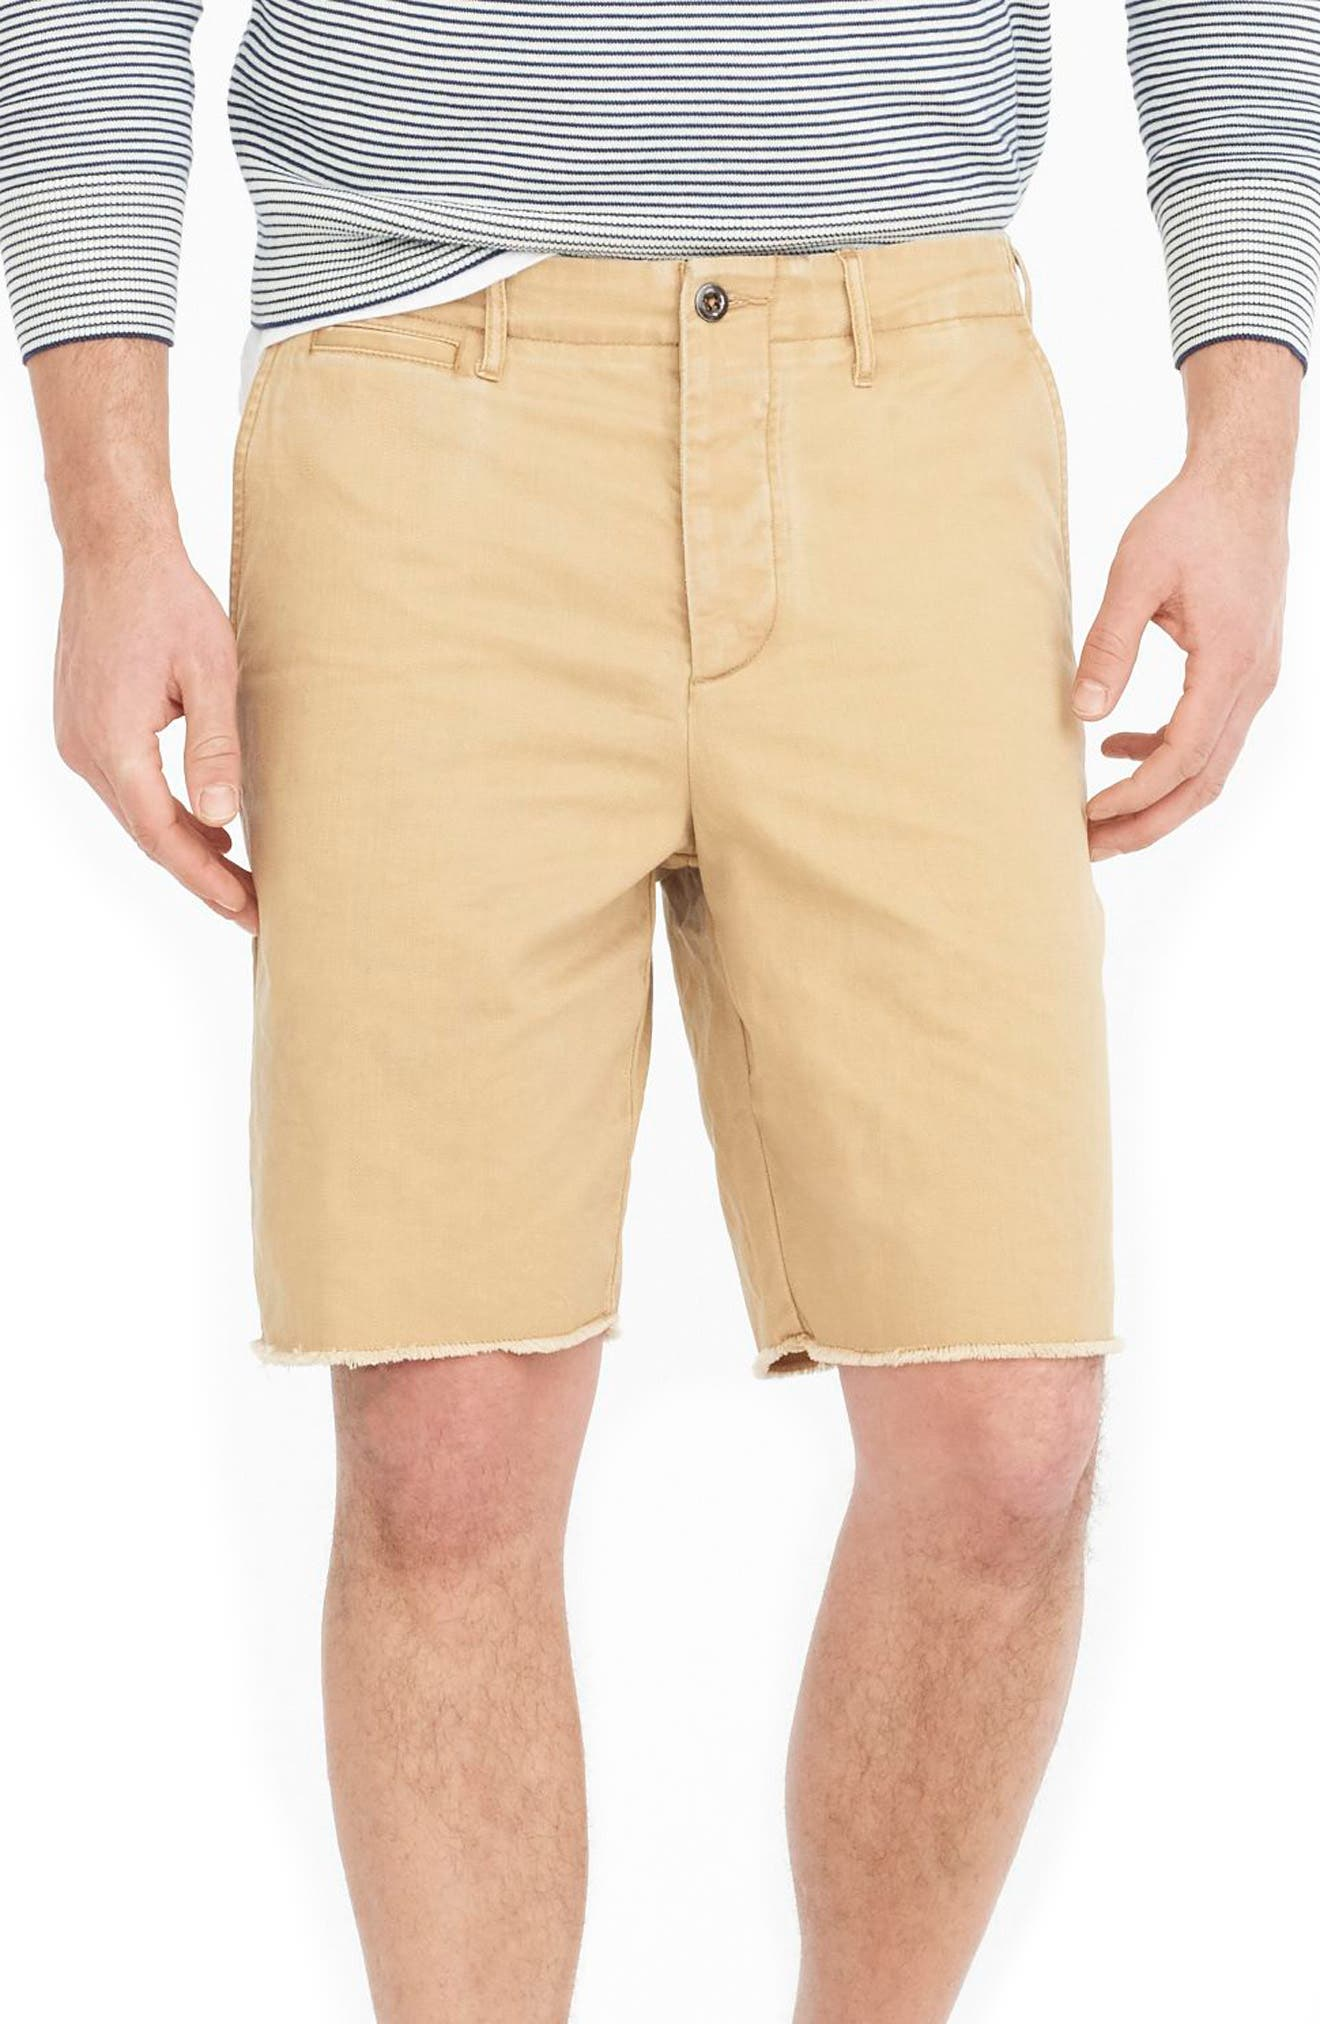 J.Crew Distressed Officer's Shorts,                         Main,                         color, Golden Khaki